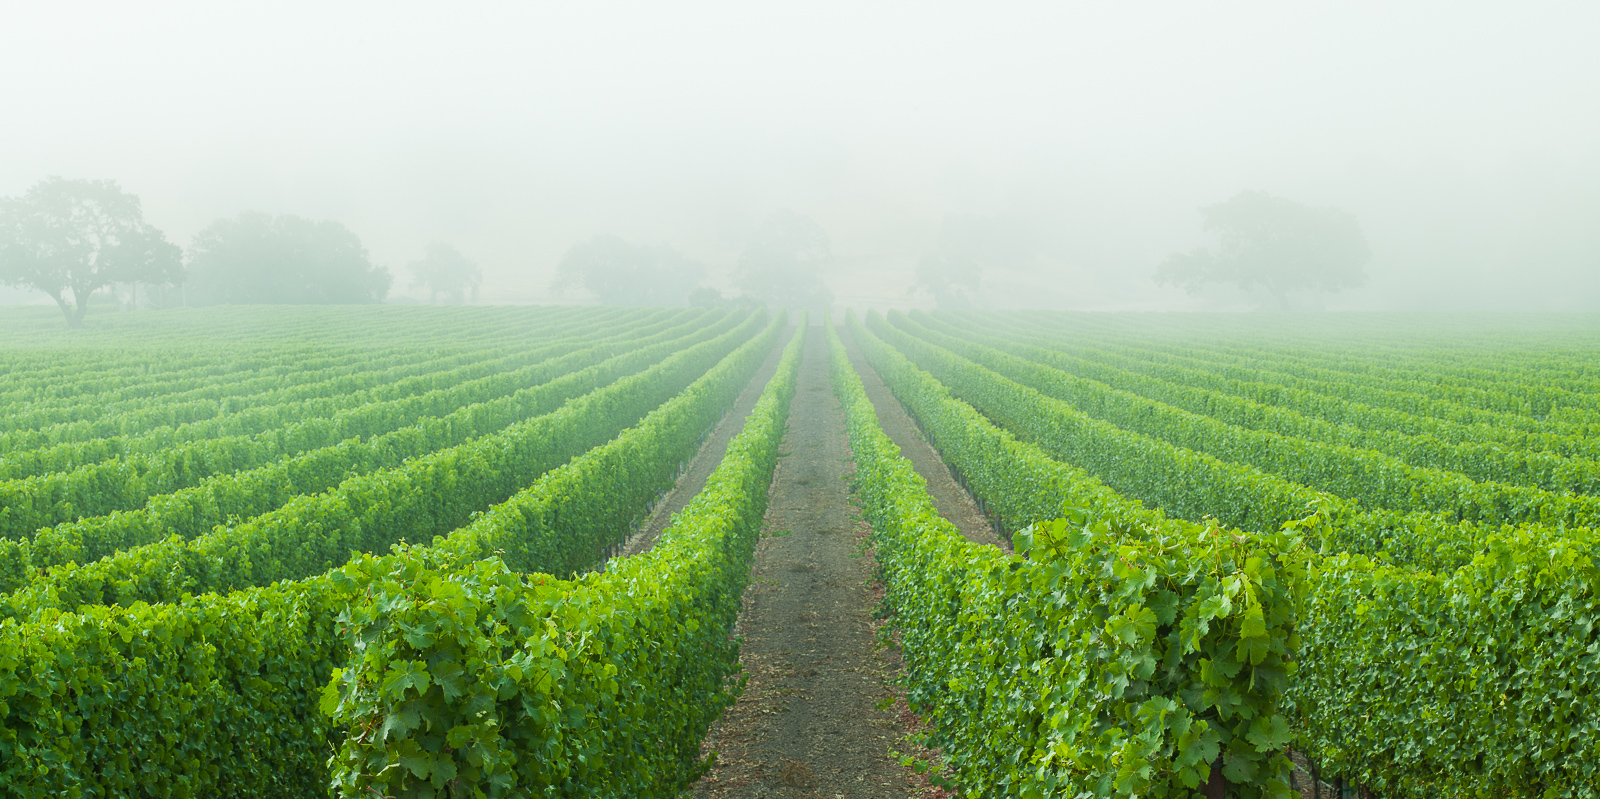 Vineyards into the Mist,California,Fog,Grapes,Panoramic,Vineyard,Wine,green,horizontal,Santa Barbara County,grape,vine,fog, photo